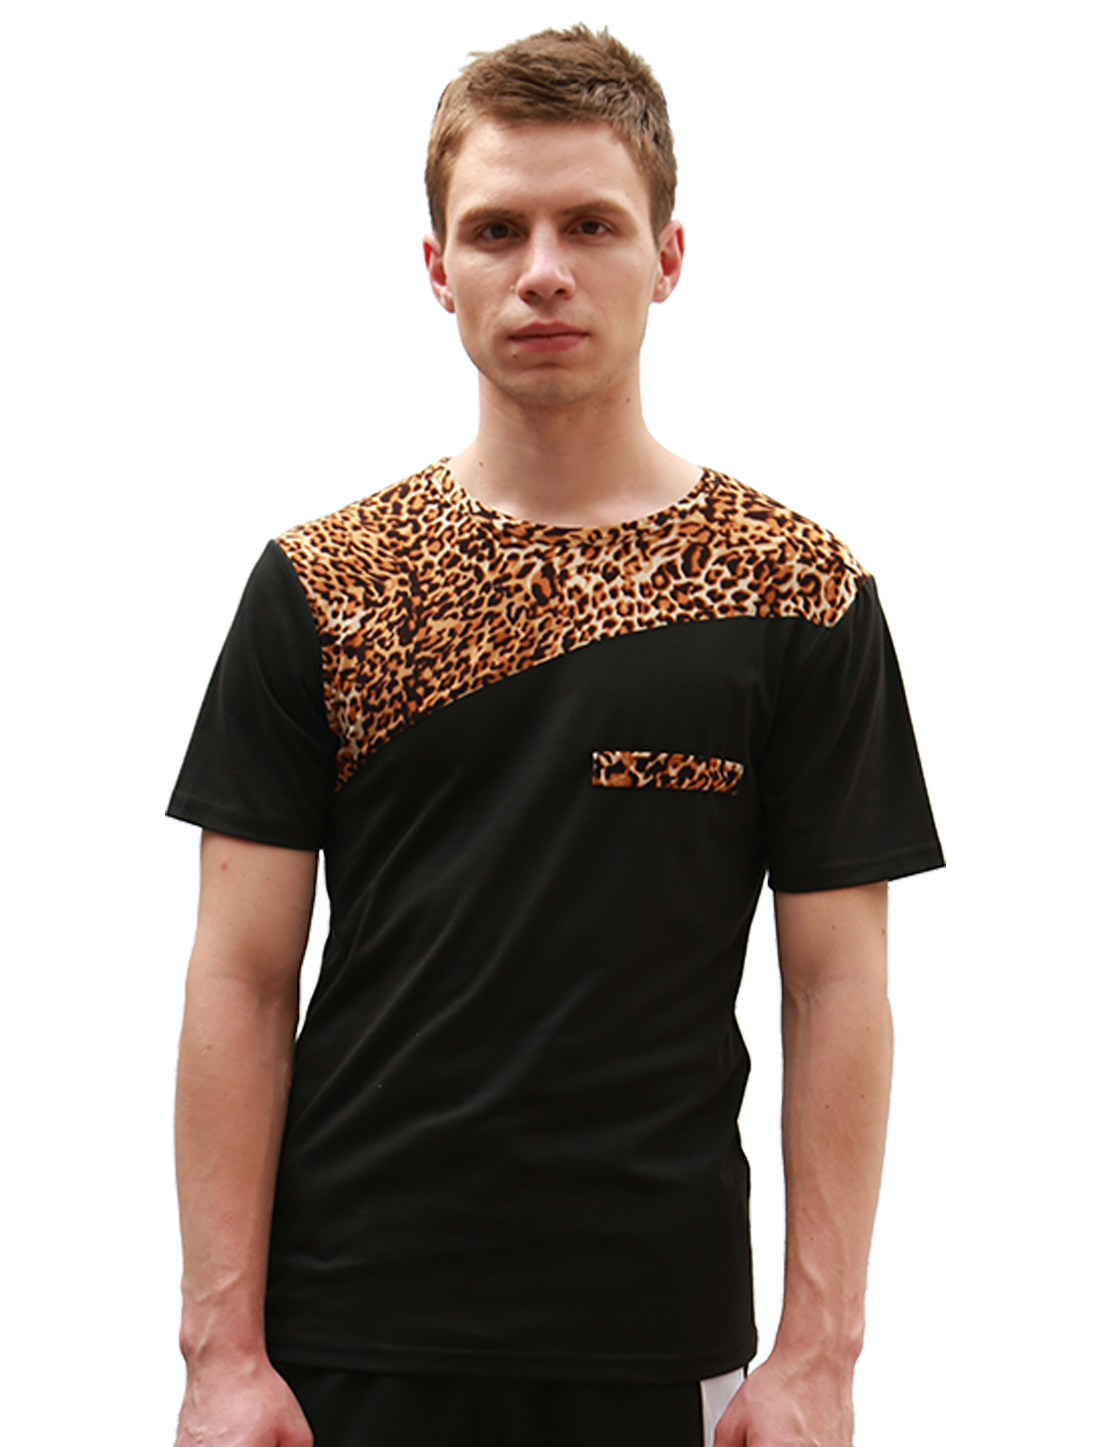 Men Black Leopard Prints Short Sleeve Design Slim Tee Shirt M